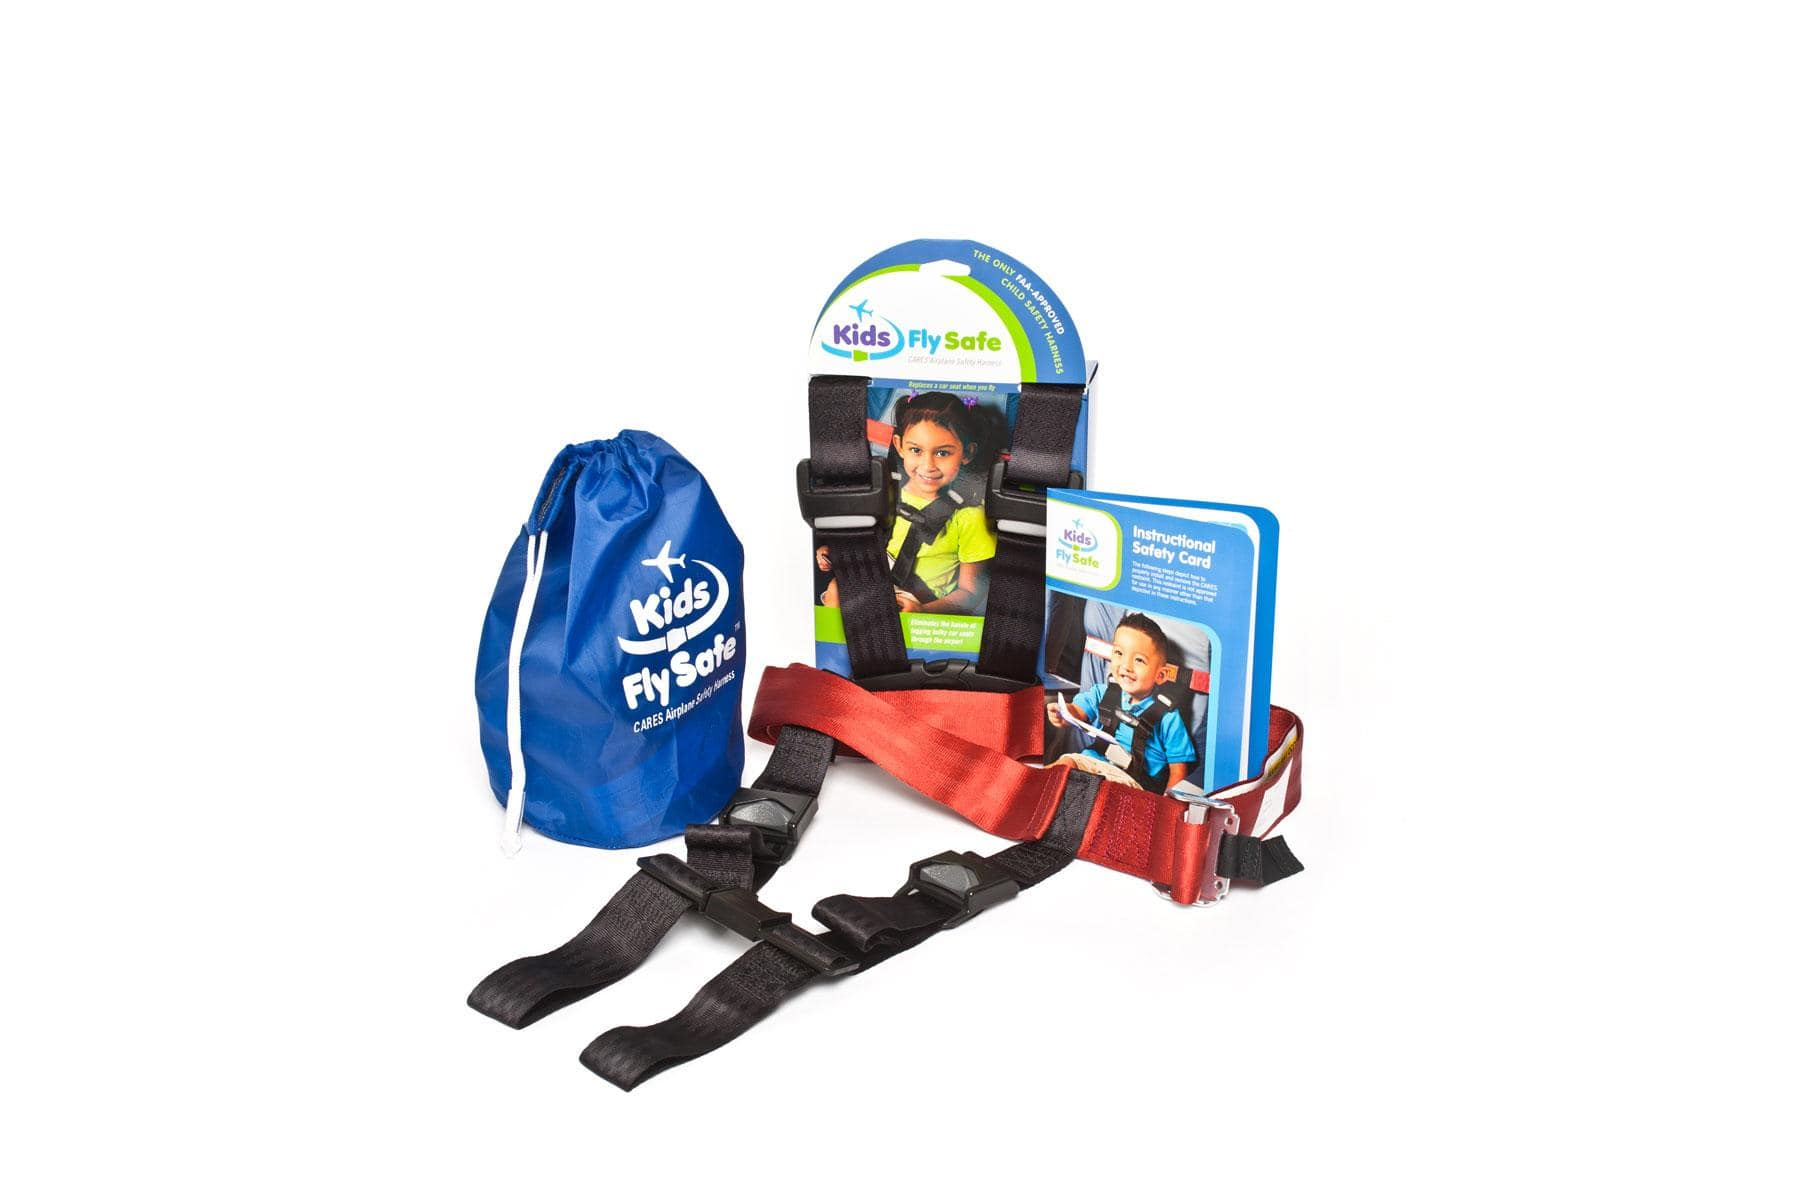 bfef27af685f Products to Help You Travel Internationally With Kids